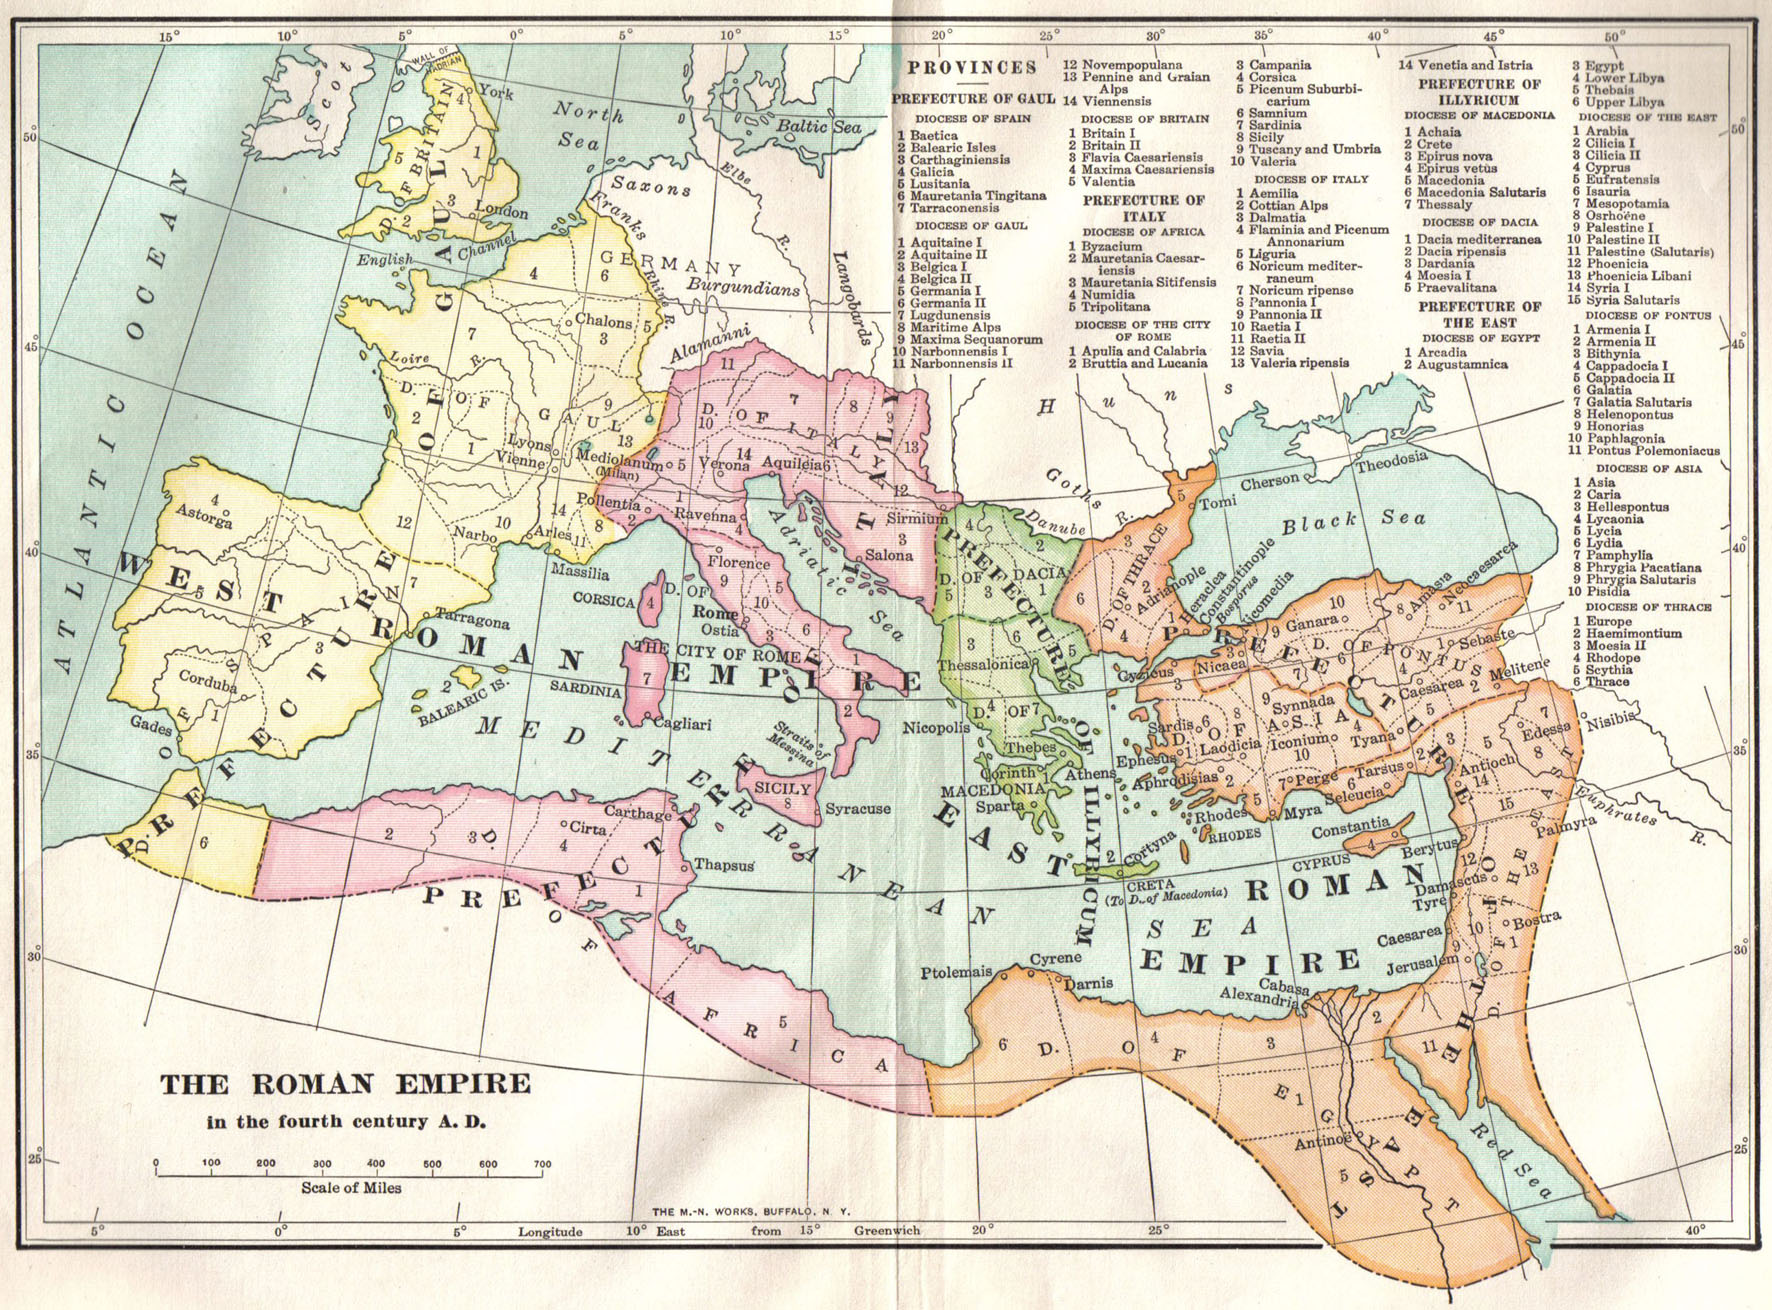 https://i0.wp.com/www.edmaps.com/roman_empire_350.jpg